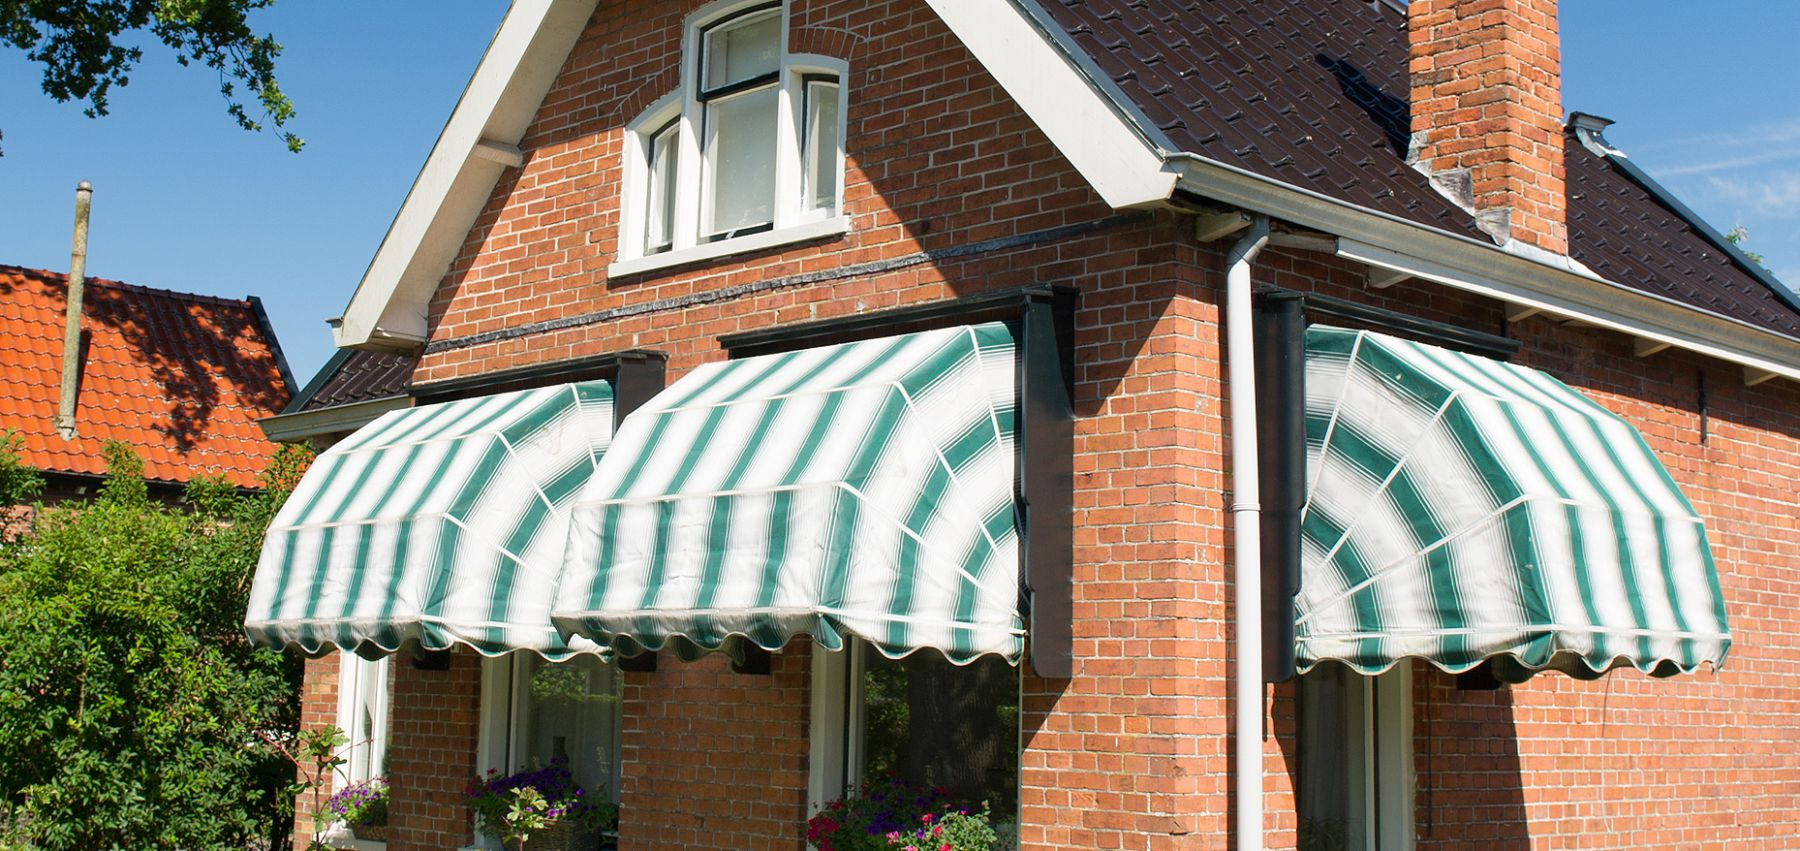 Retractable Awnings Window Awning Manufacturer Outdoor